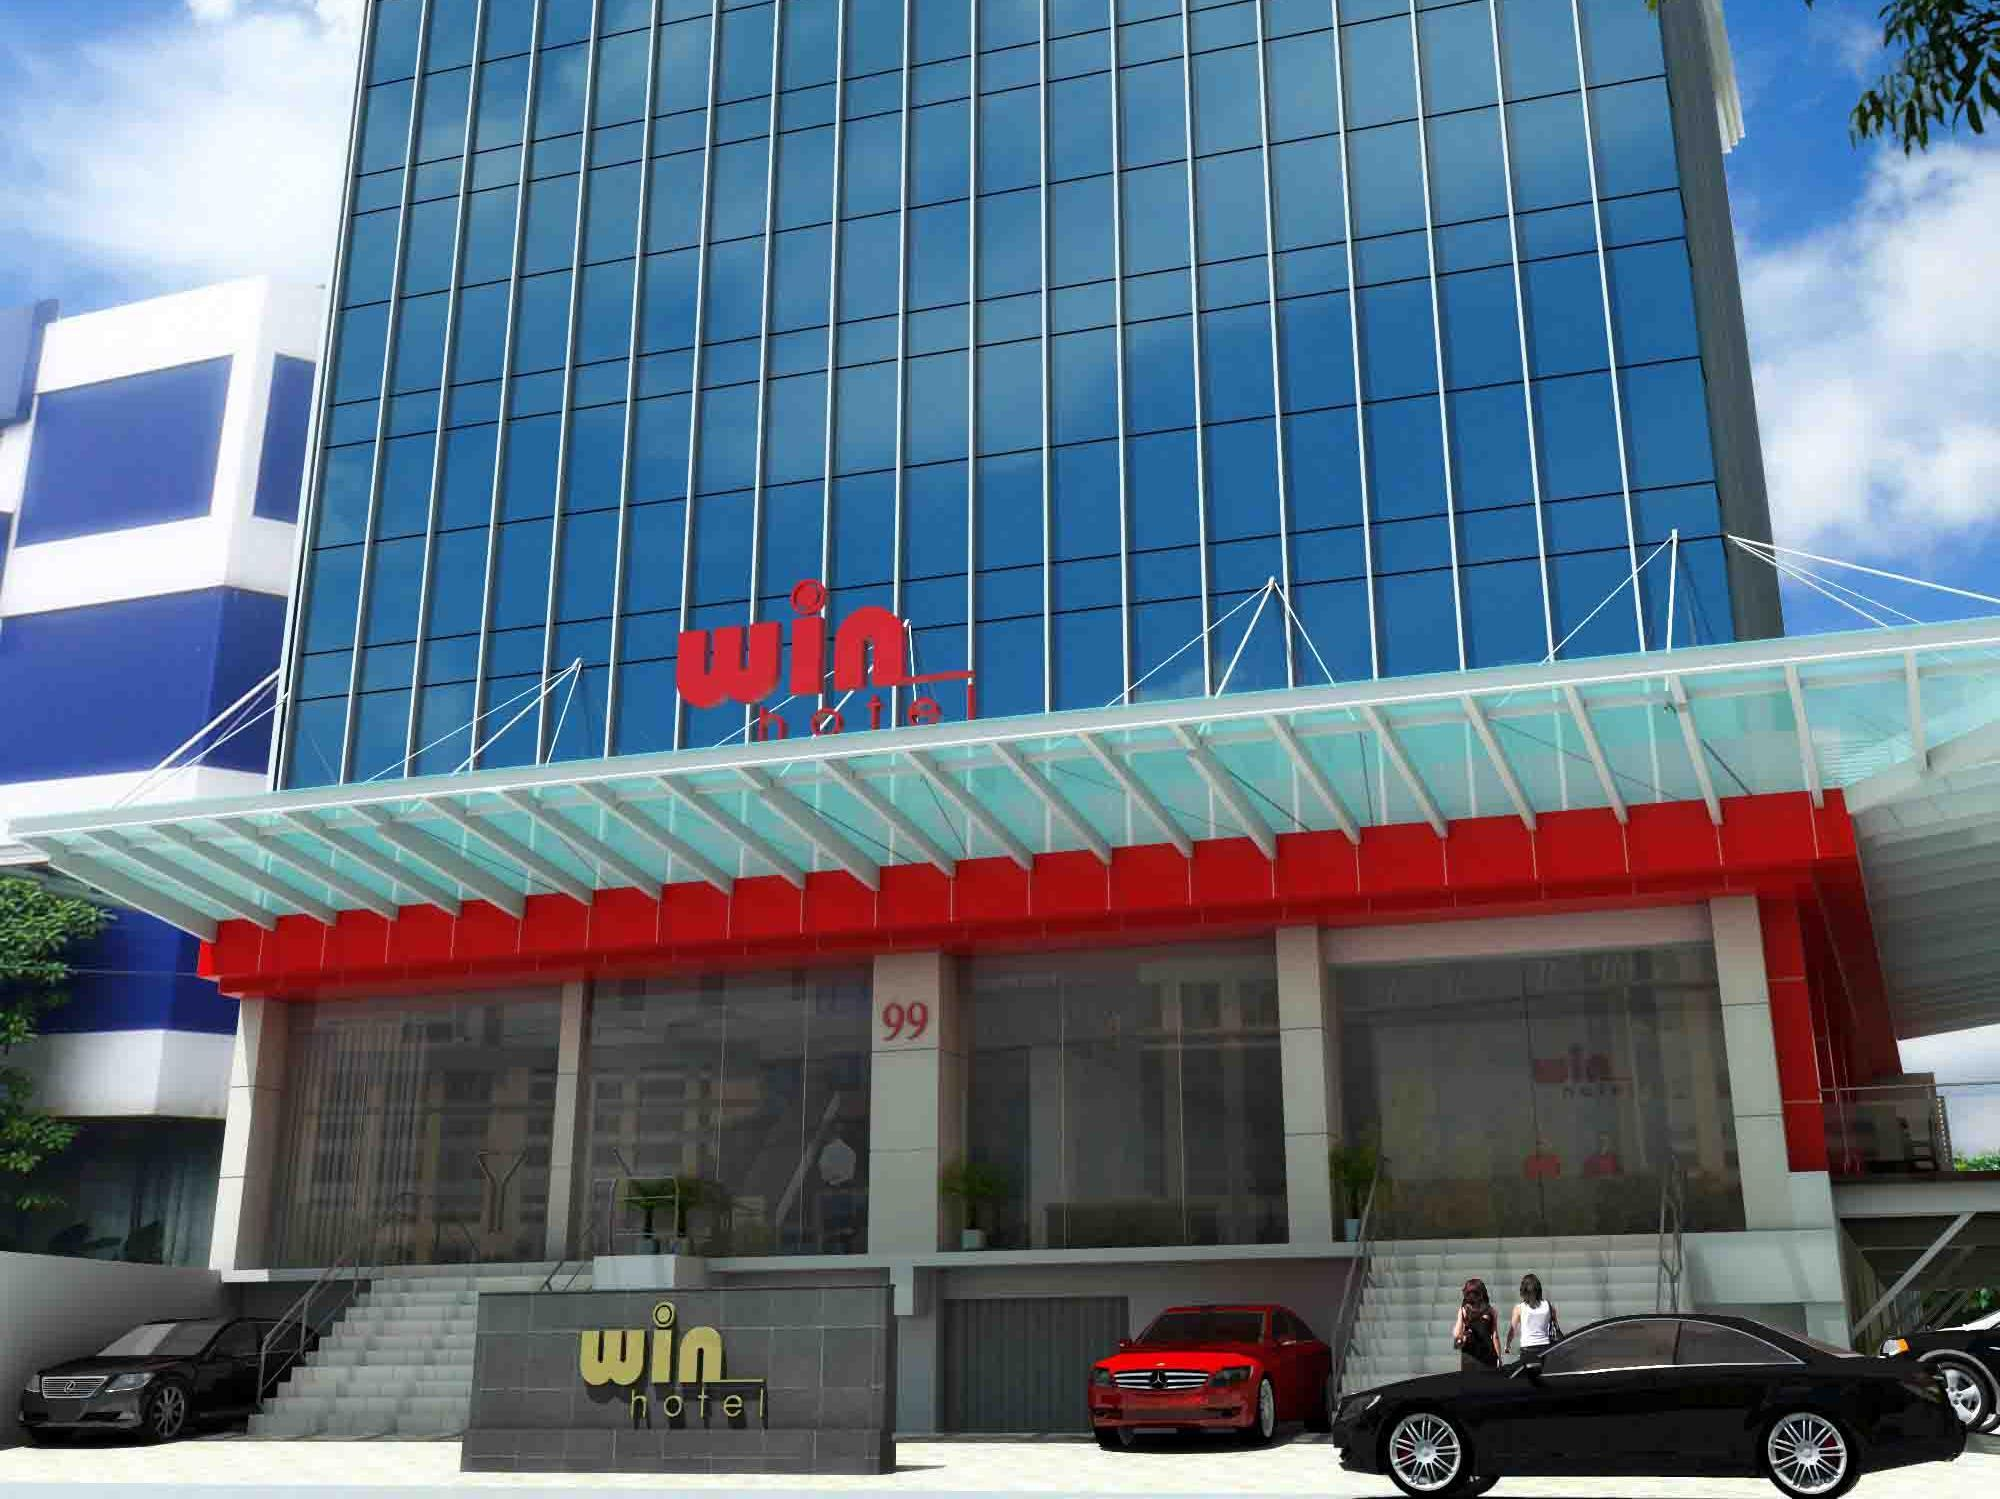 Win Hotel - Hotels and Accommodation in Indonesia, Asia